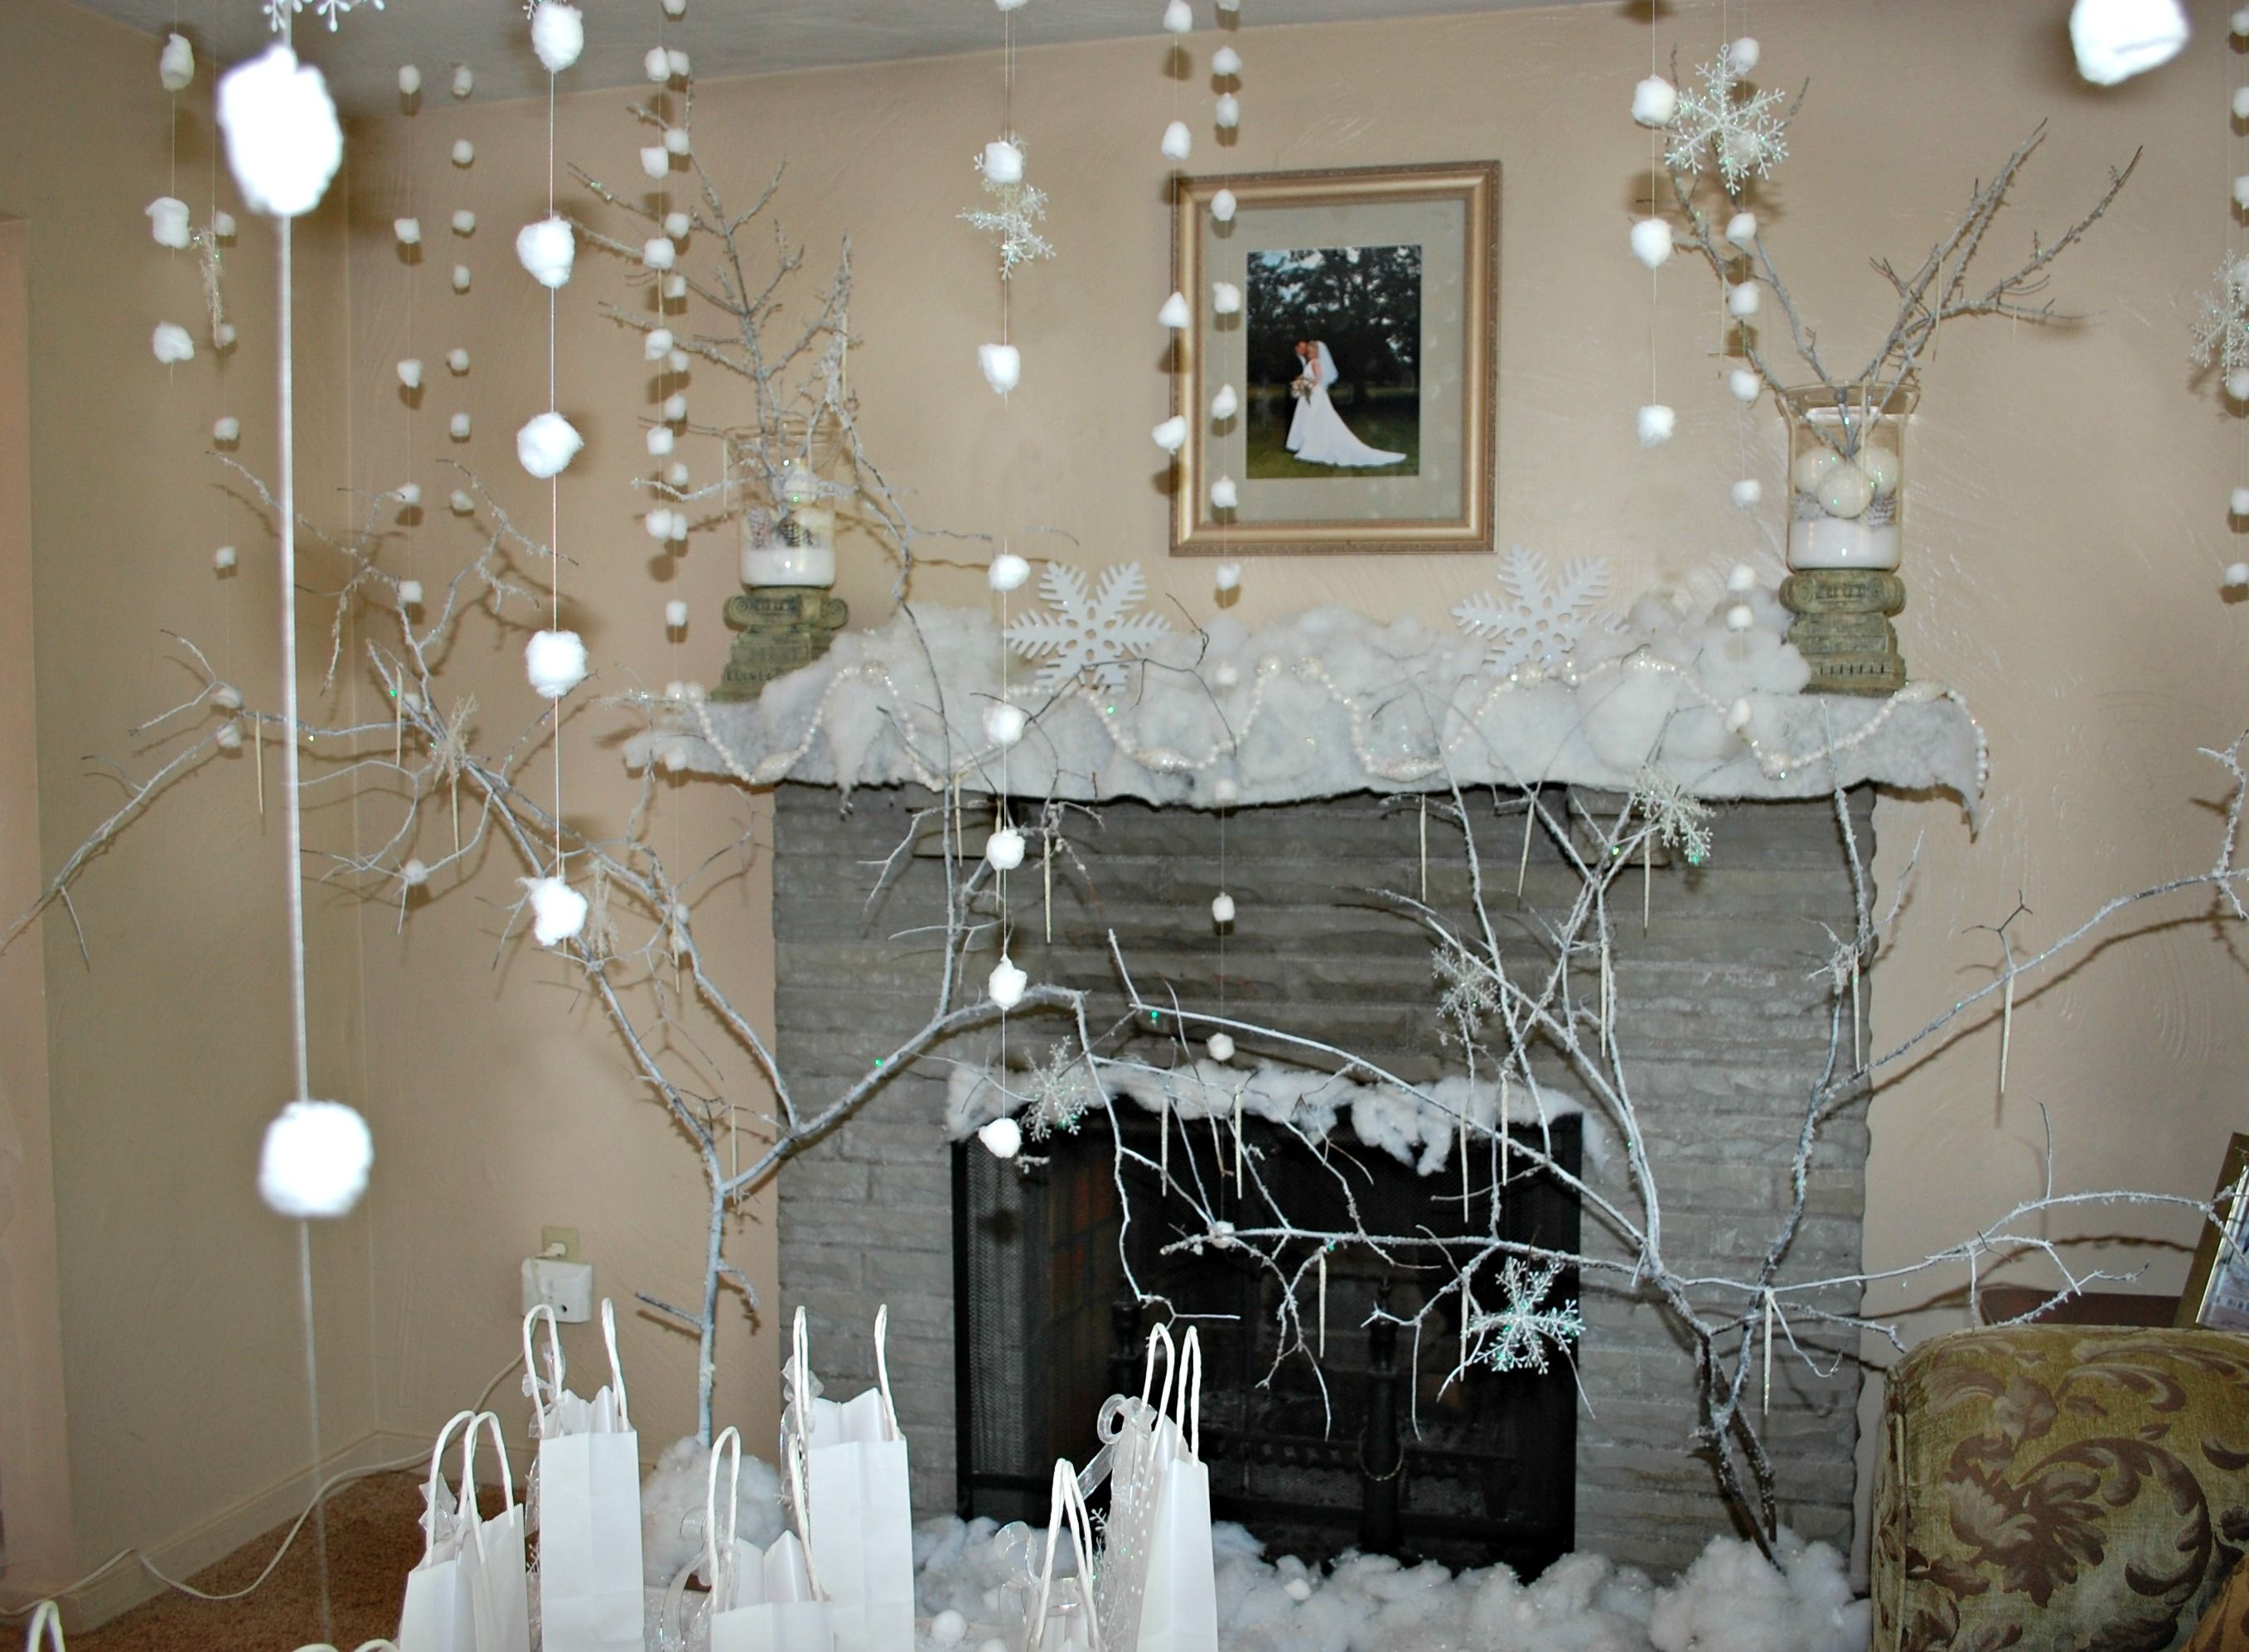 Cotton ball snow falling from the ceiling winter wonderland birthday party pinterest snow - Cotton ballspractical ideas ...